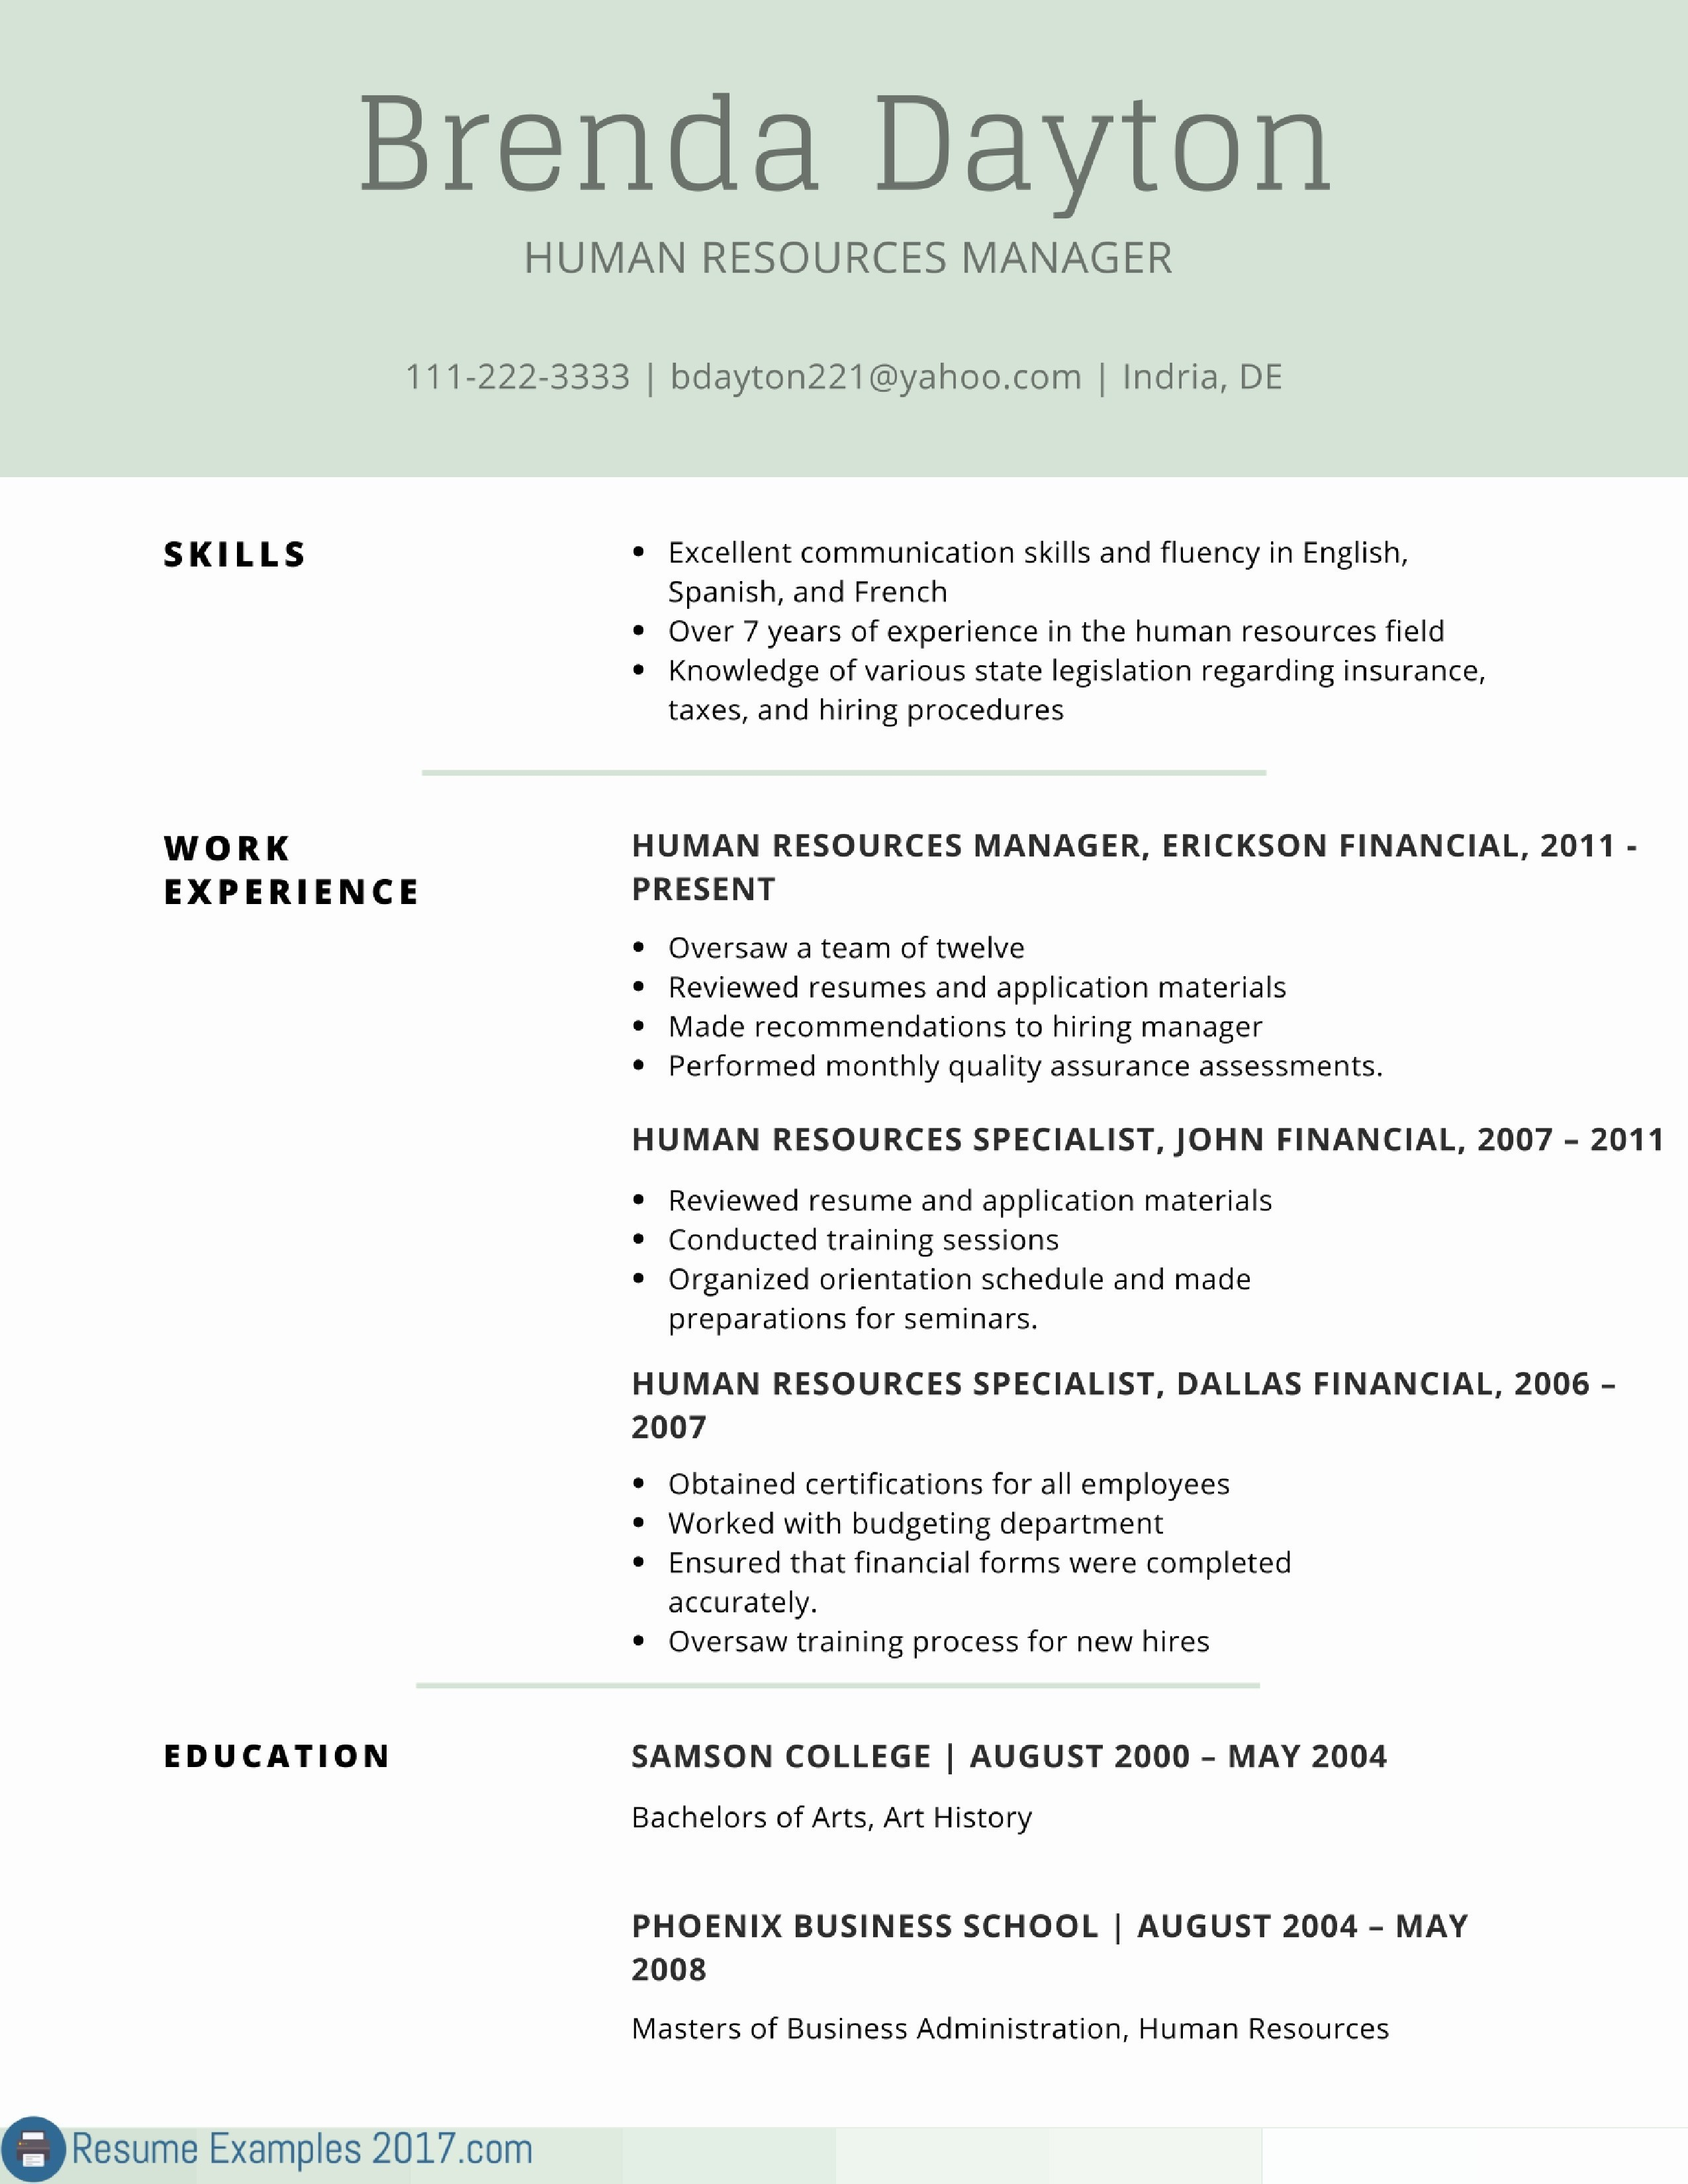 Chronological Resume Template - Chronological Resume Samples Elegant Resume Templates Copy and Paste